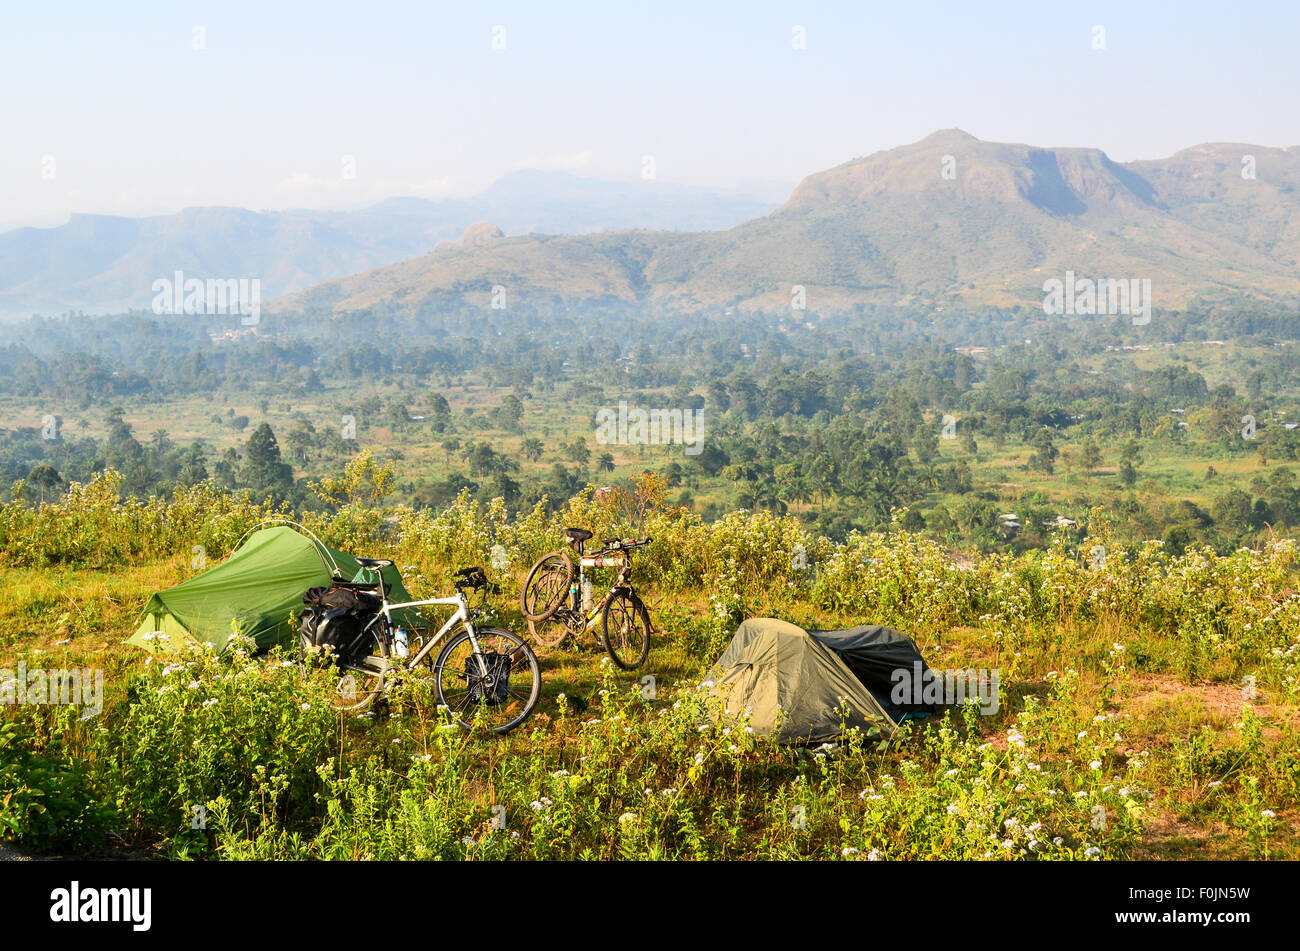 Camping in Cameroon - Stock Image